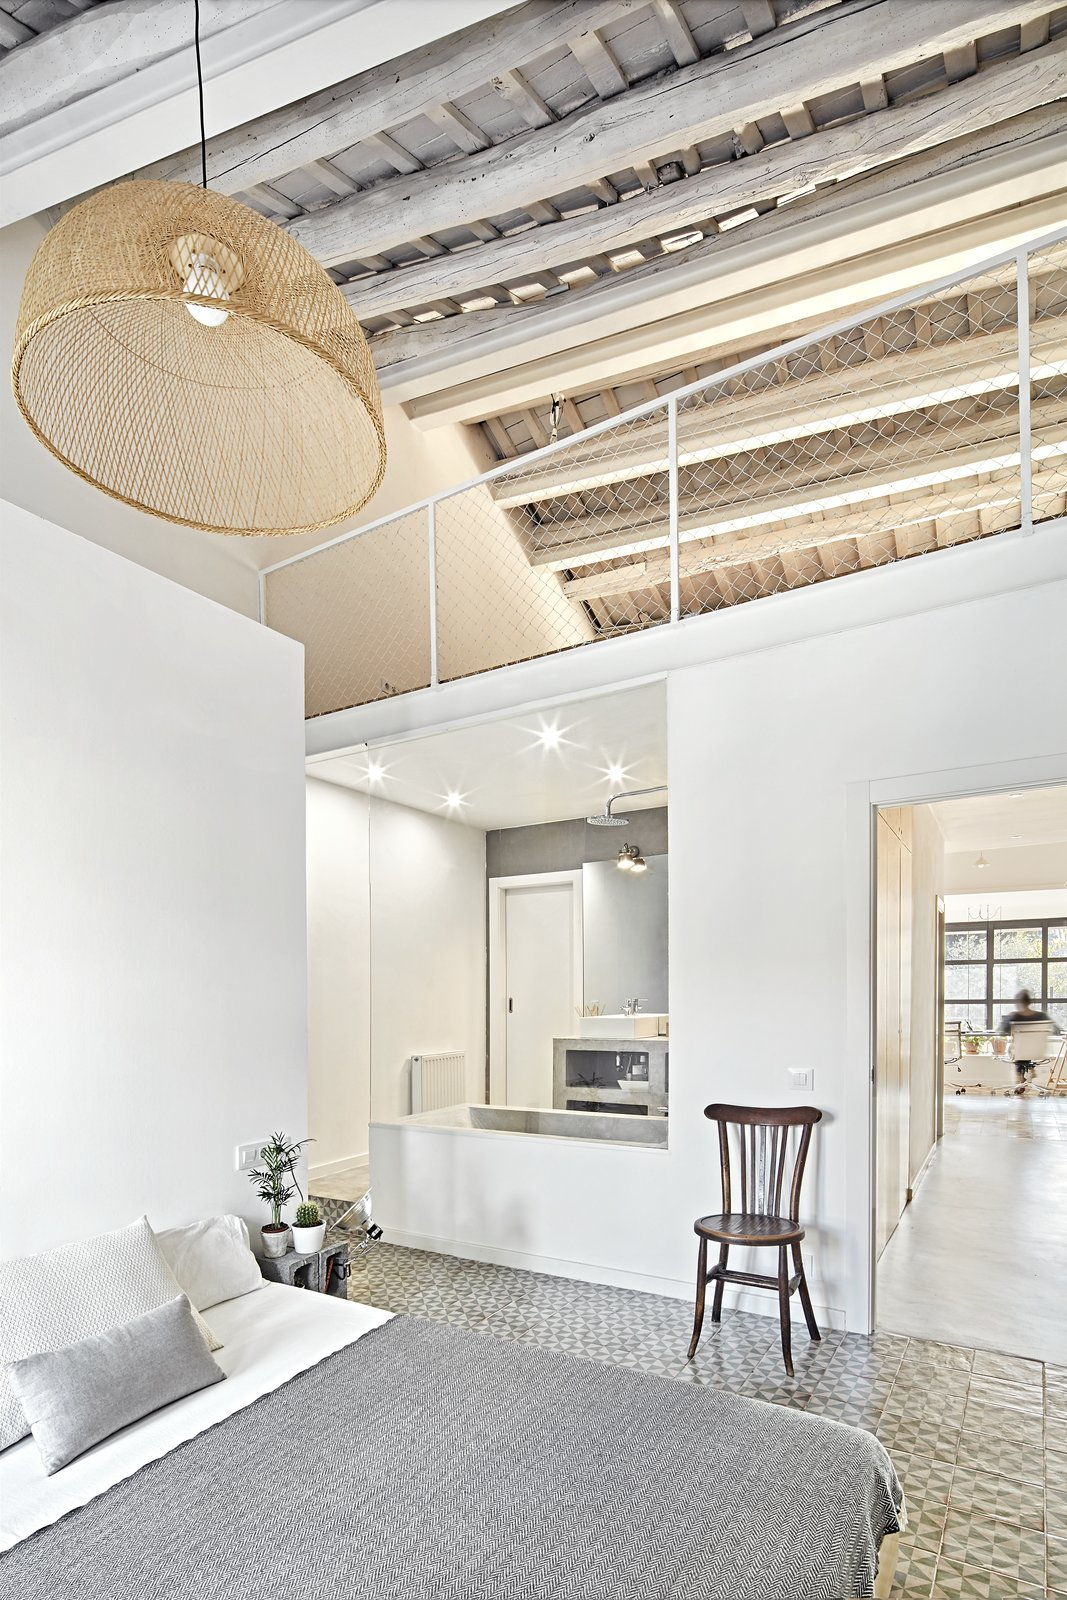 Bedroom, Bed, Pendant Lighting, Chair, and Night Stands  Photo 7 of 11 in Can This Renovated, Loft-Like Home in Spain Be Any Dreamier?